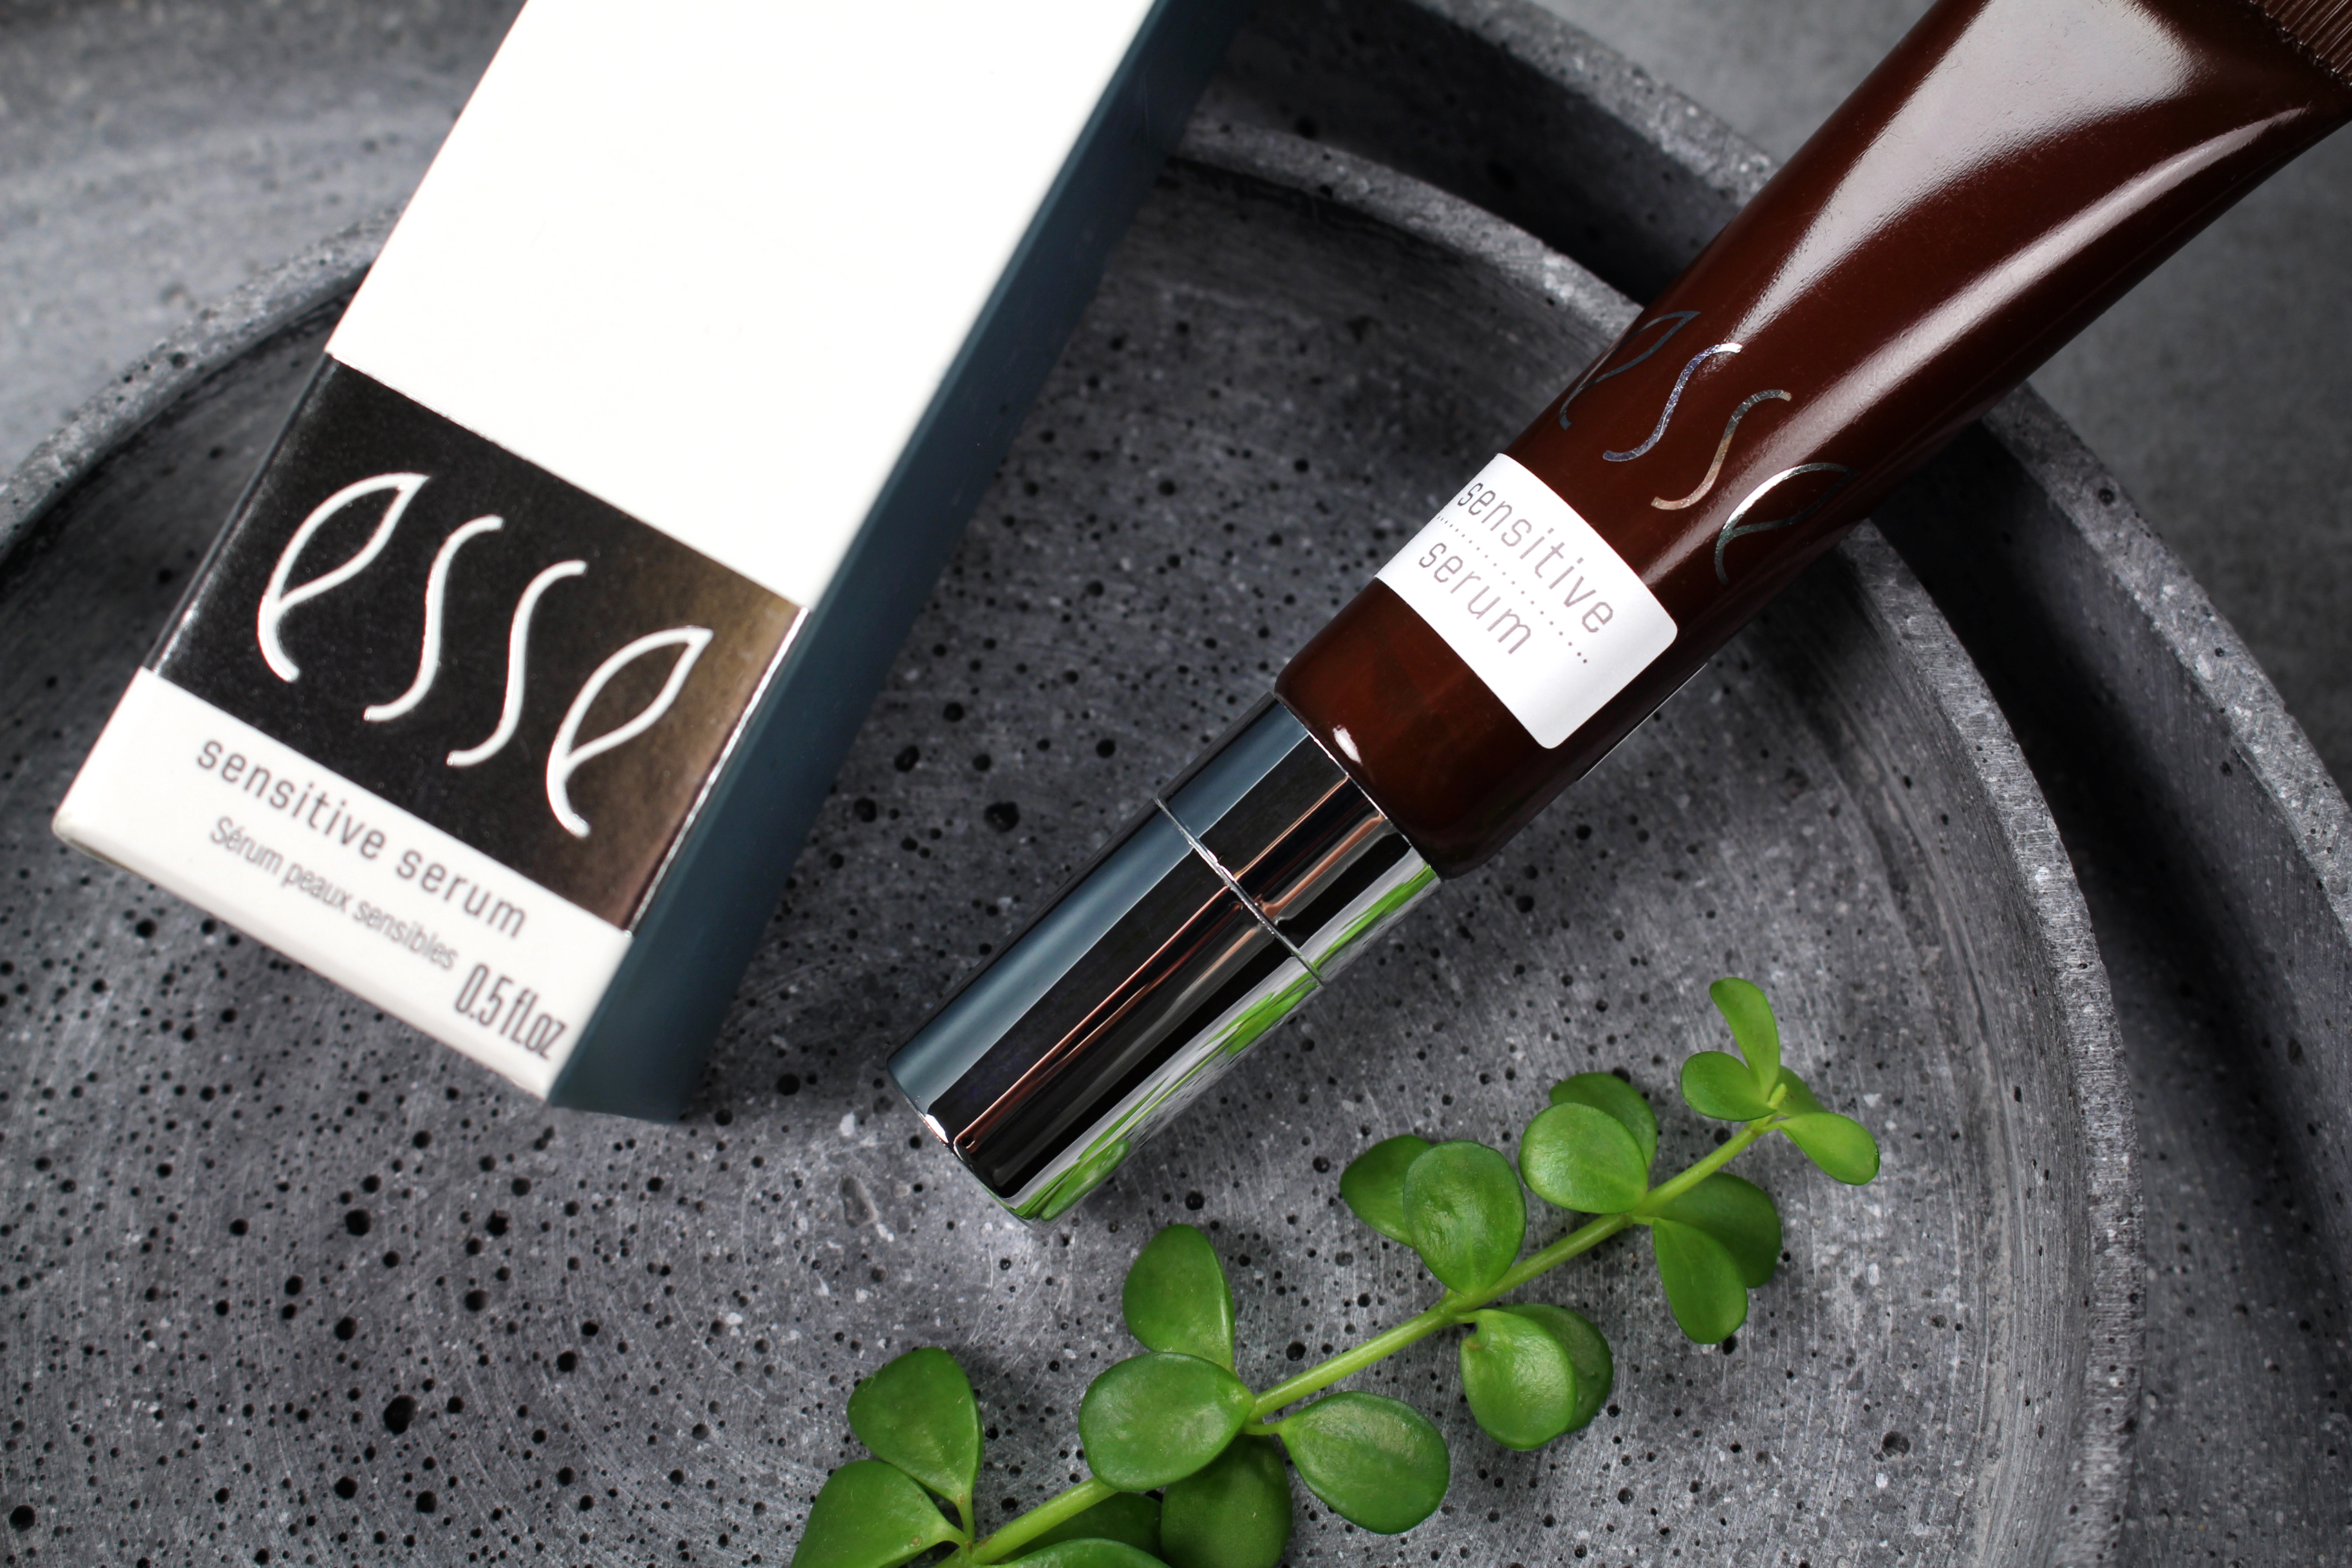 esse-organic-skincare-sensitive-serum-review